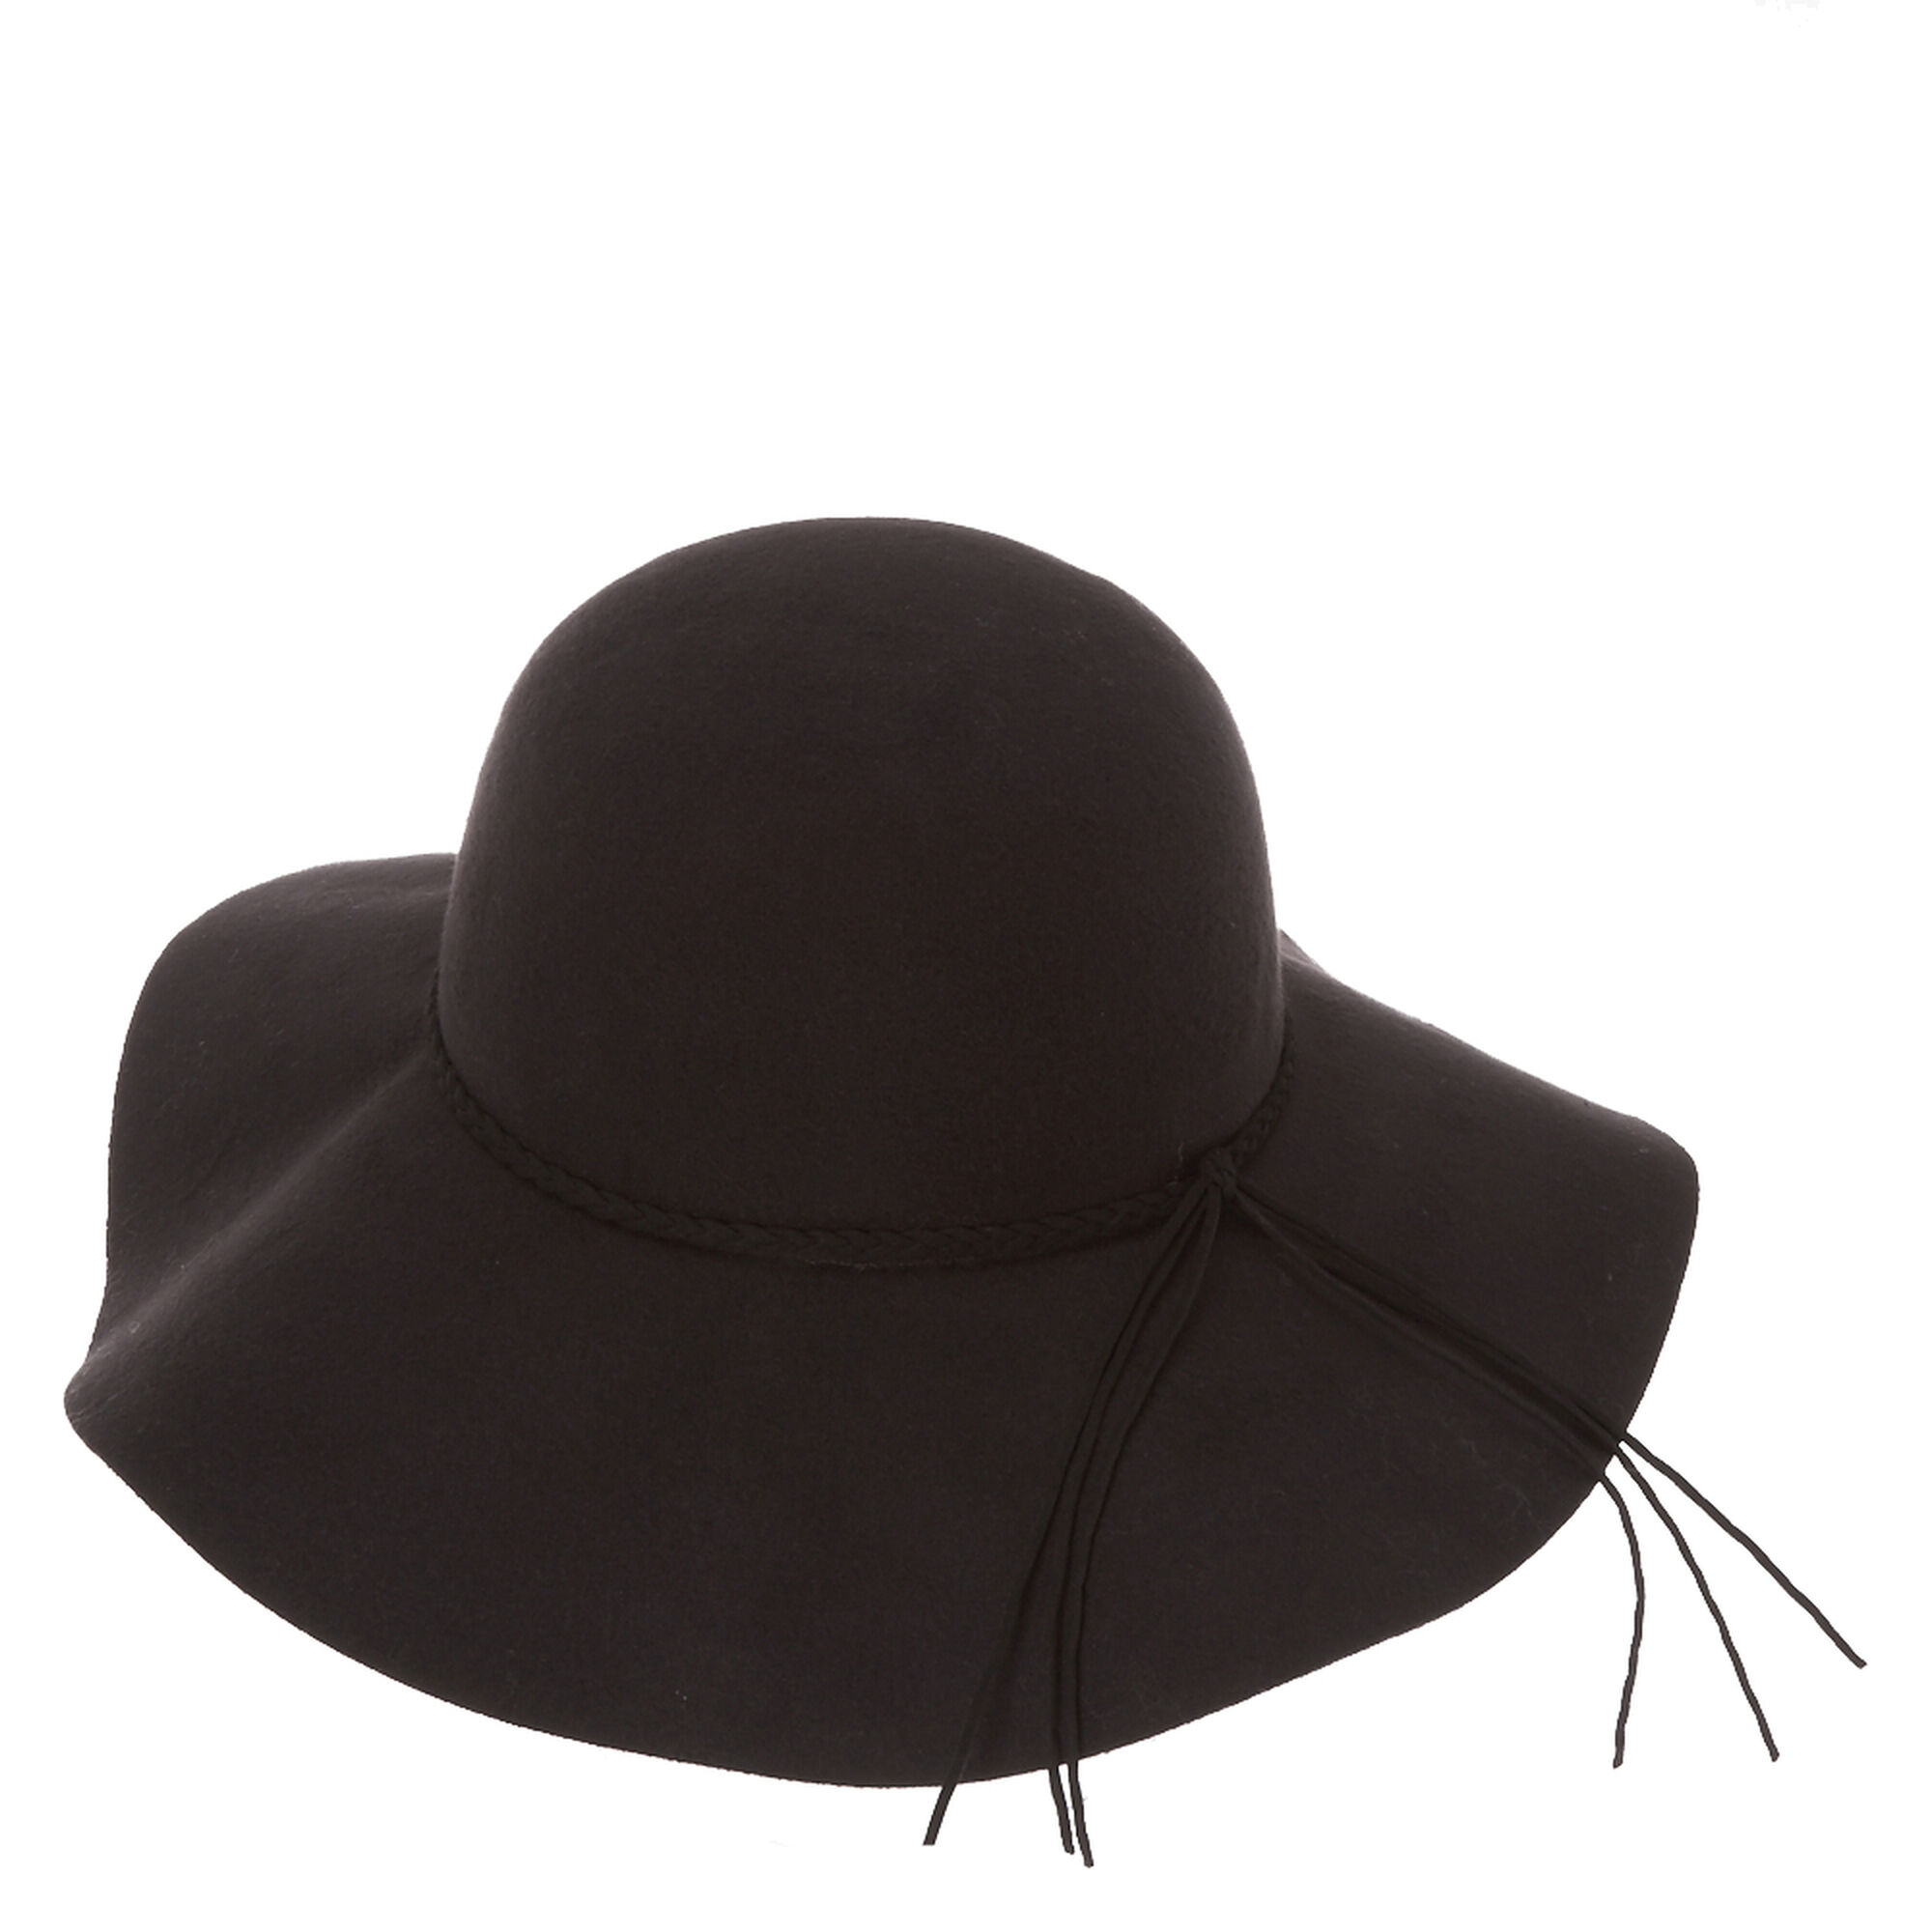 0d2a7cc5 Black Felt Floppy Hat | Icing US